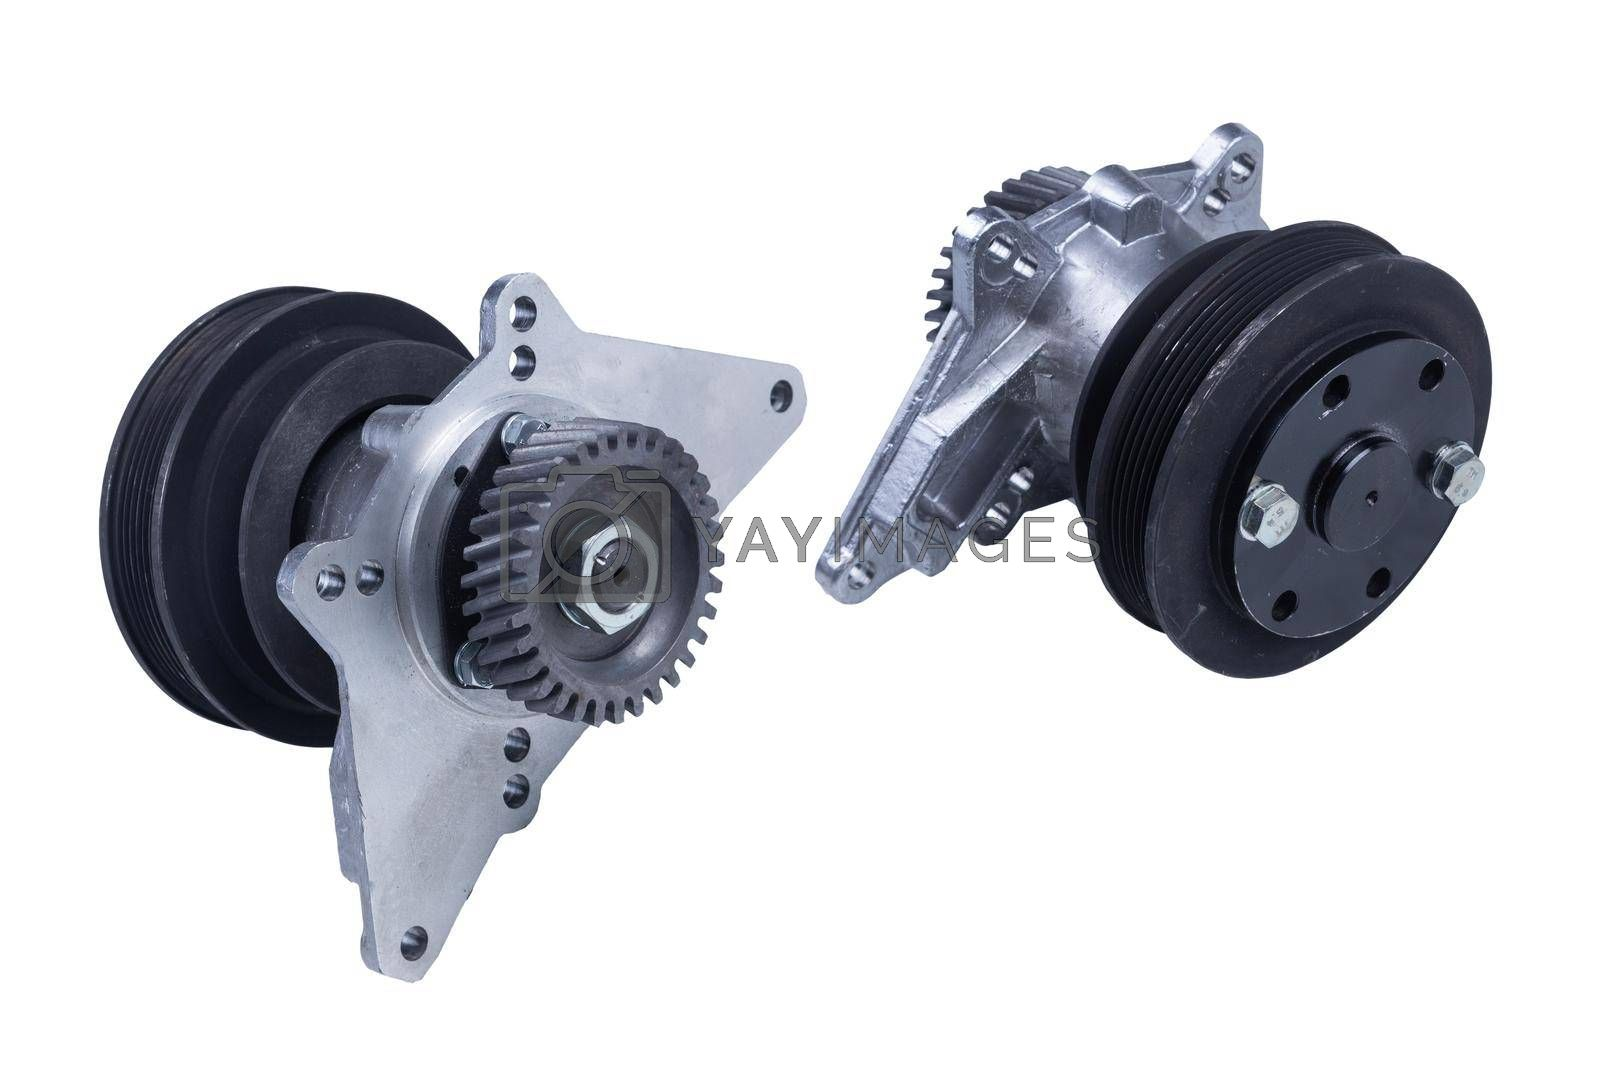 Royalty free image of the hydraulic coupling of the truck fan drive is isolated on a white background by forester